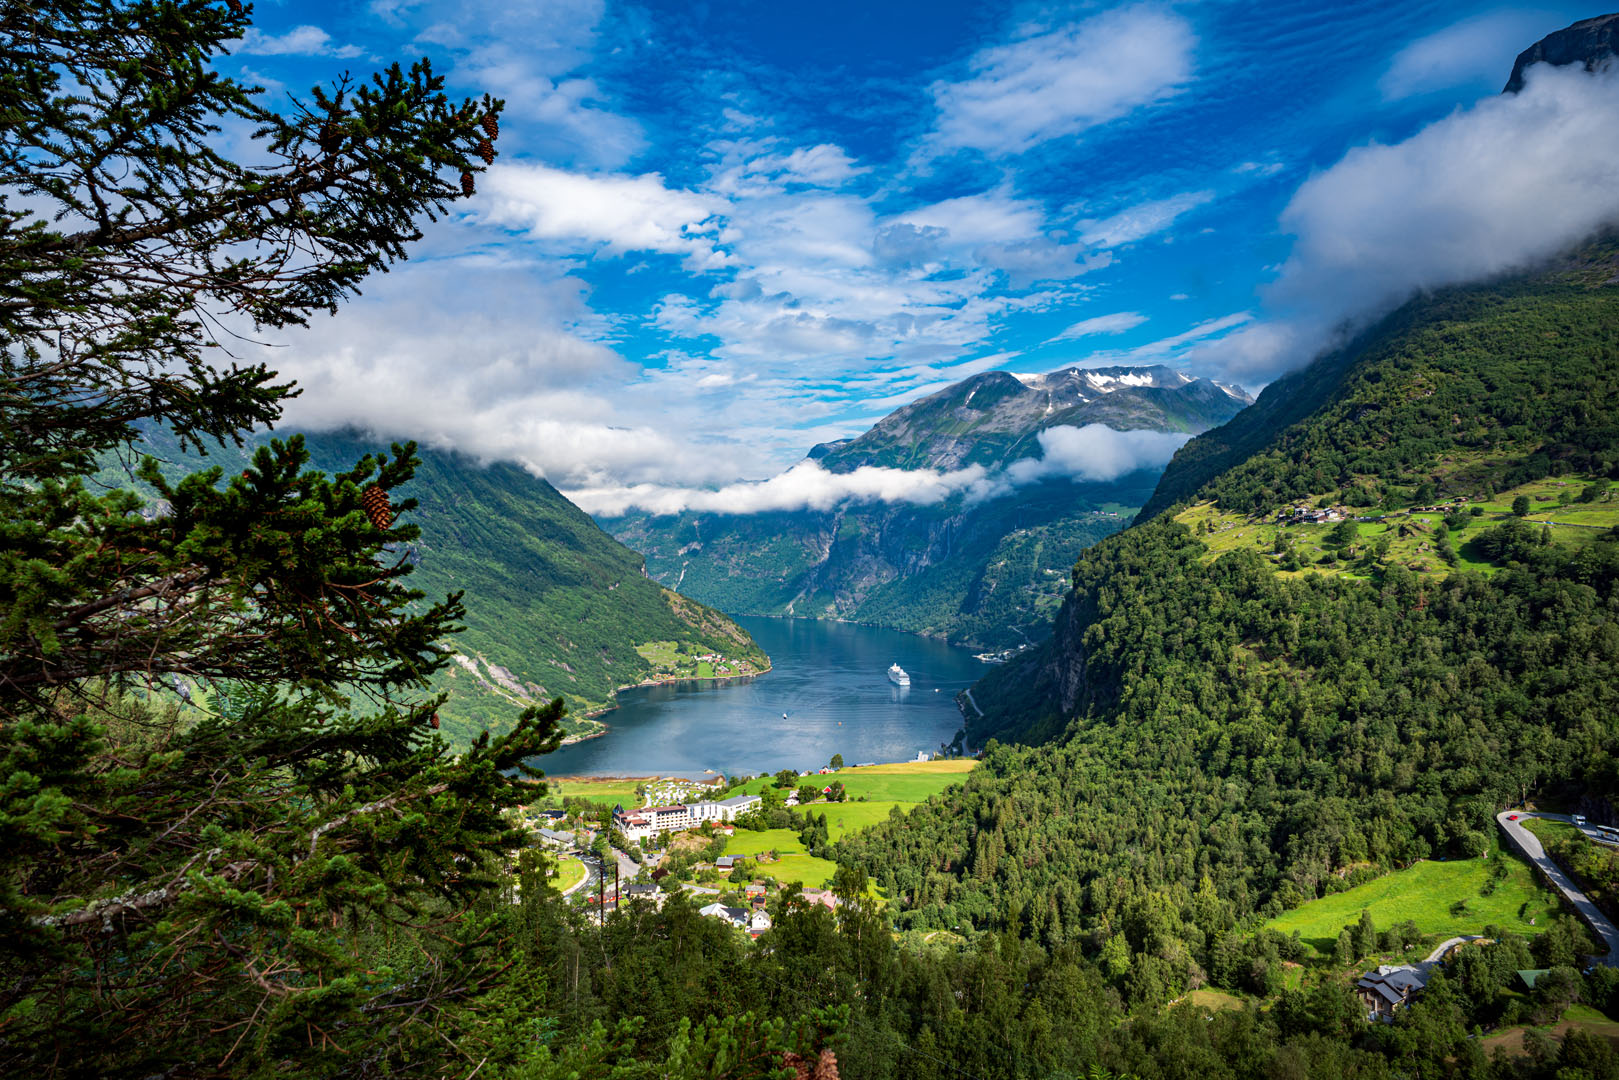 Picture of Geiranger fjord in Norway.